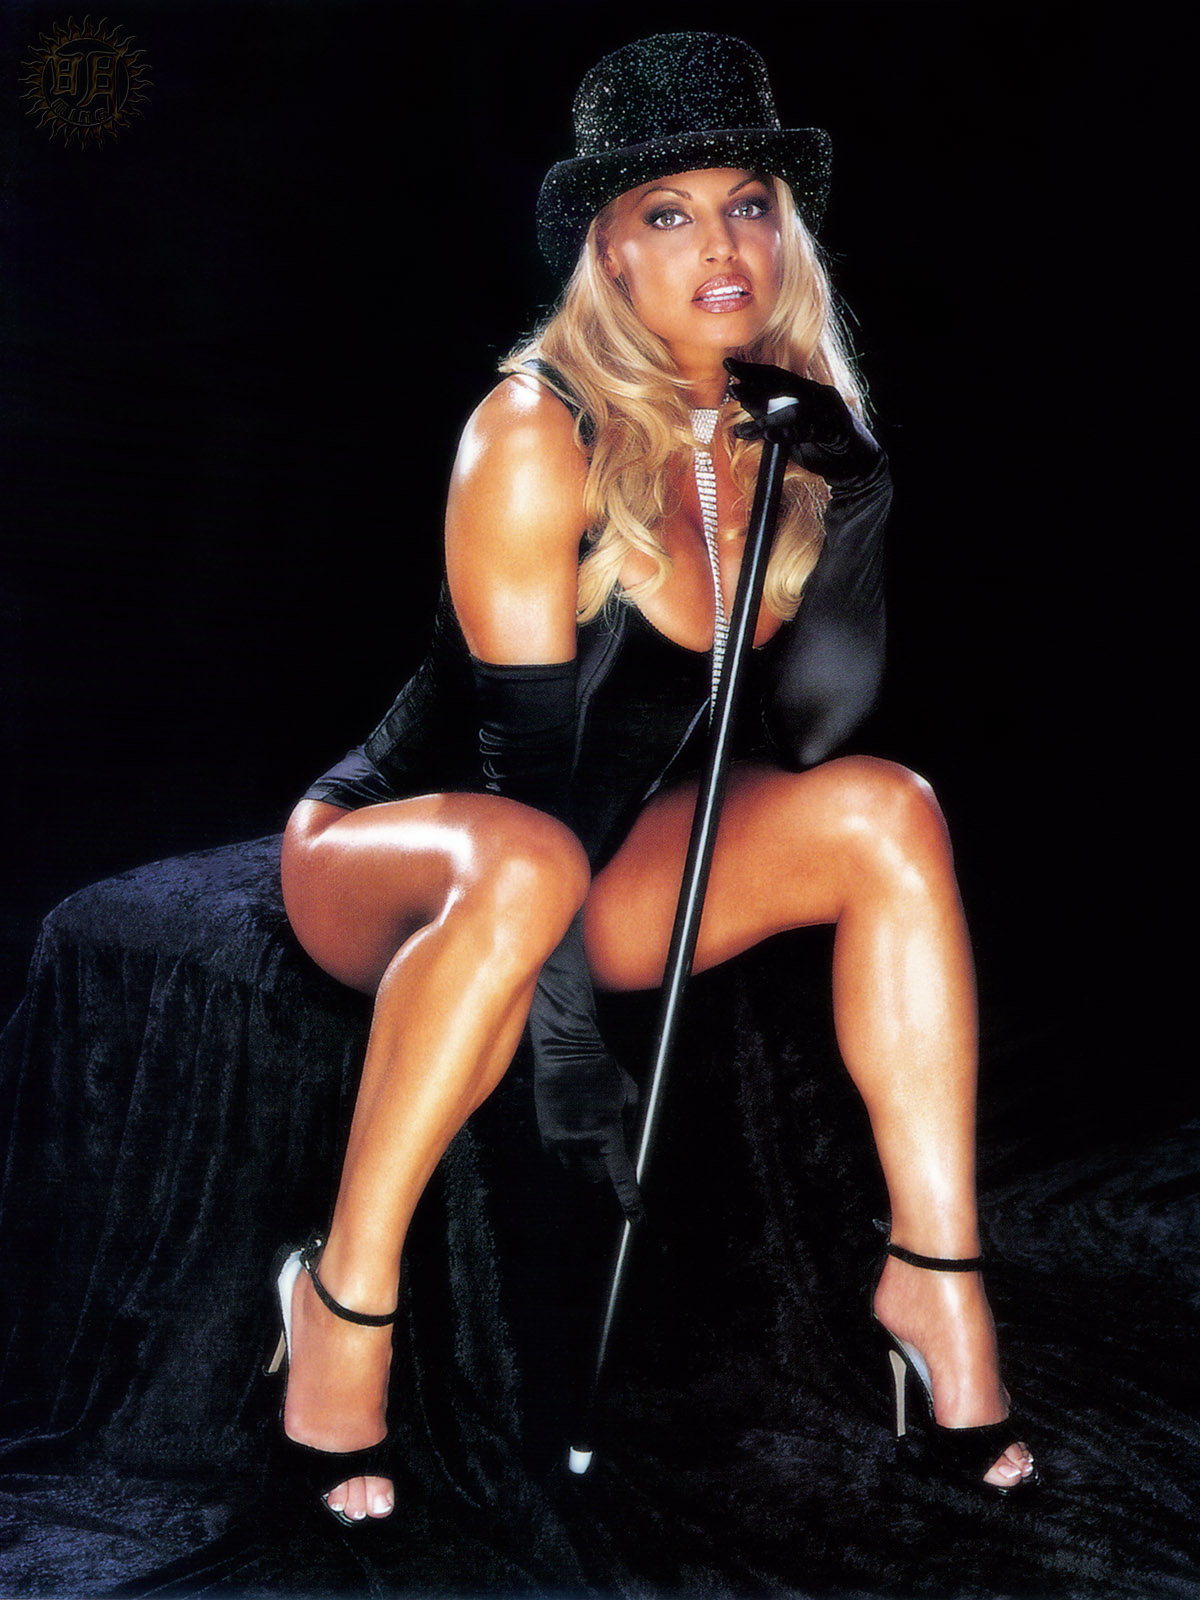 Trish stratus in the nude